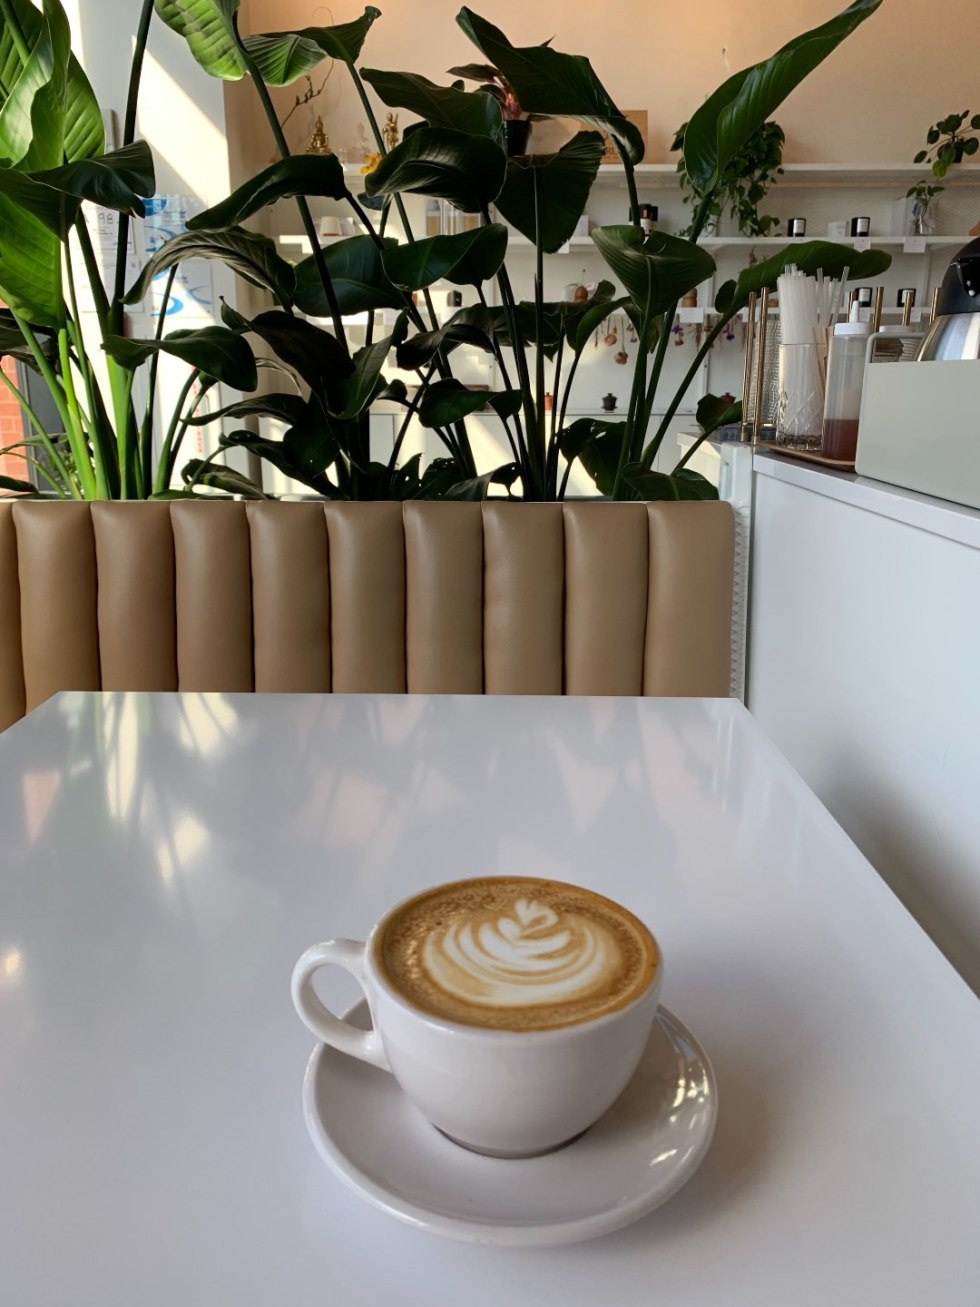 Top 15 Coffee Shops in Raleigh, NC - I'm Fixin' To - @mbg0112 | Best Coffee Shops in Raleigh NC featured by top NC blog, I'm Fixin' To: Heirloom Brewshop